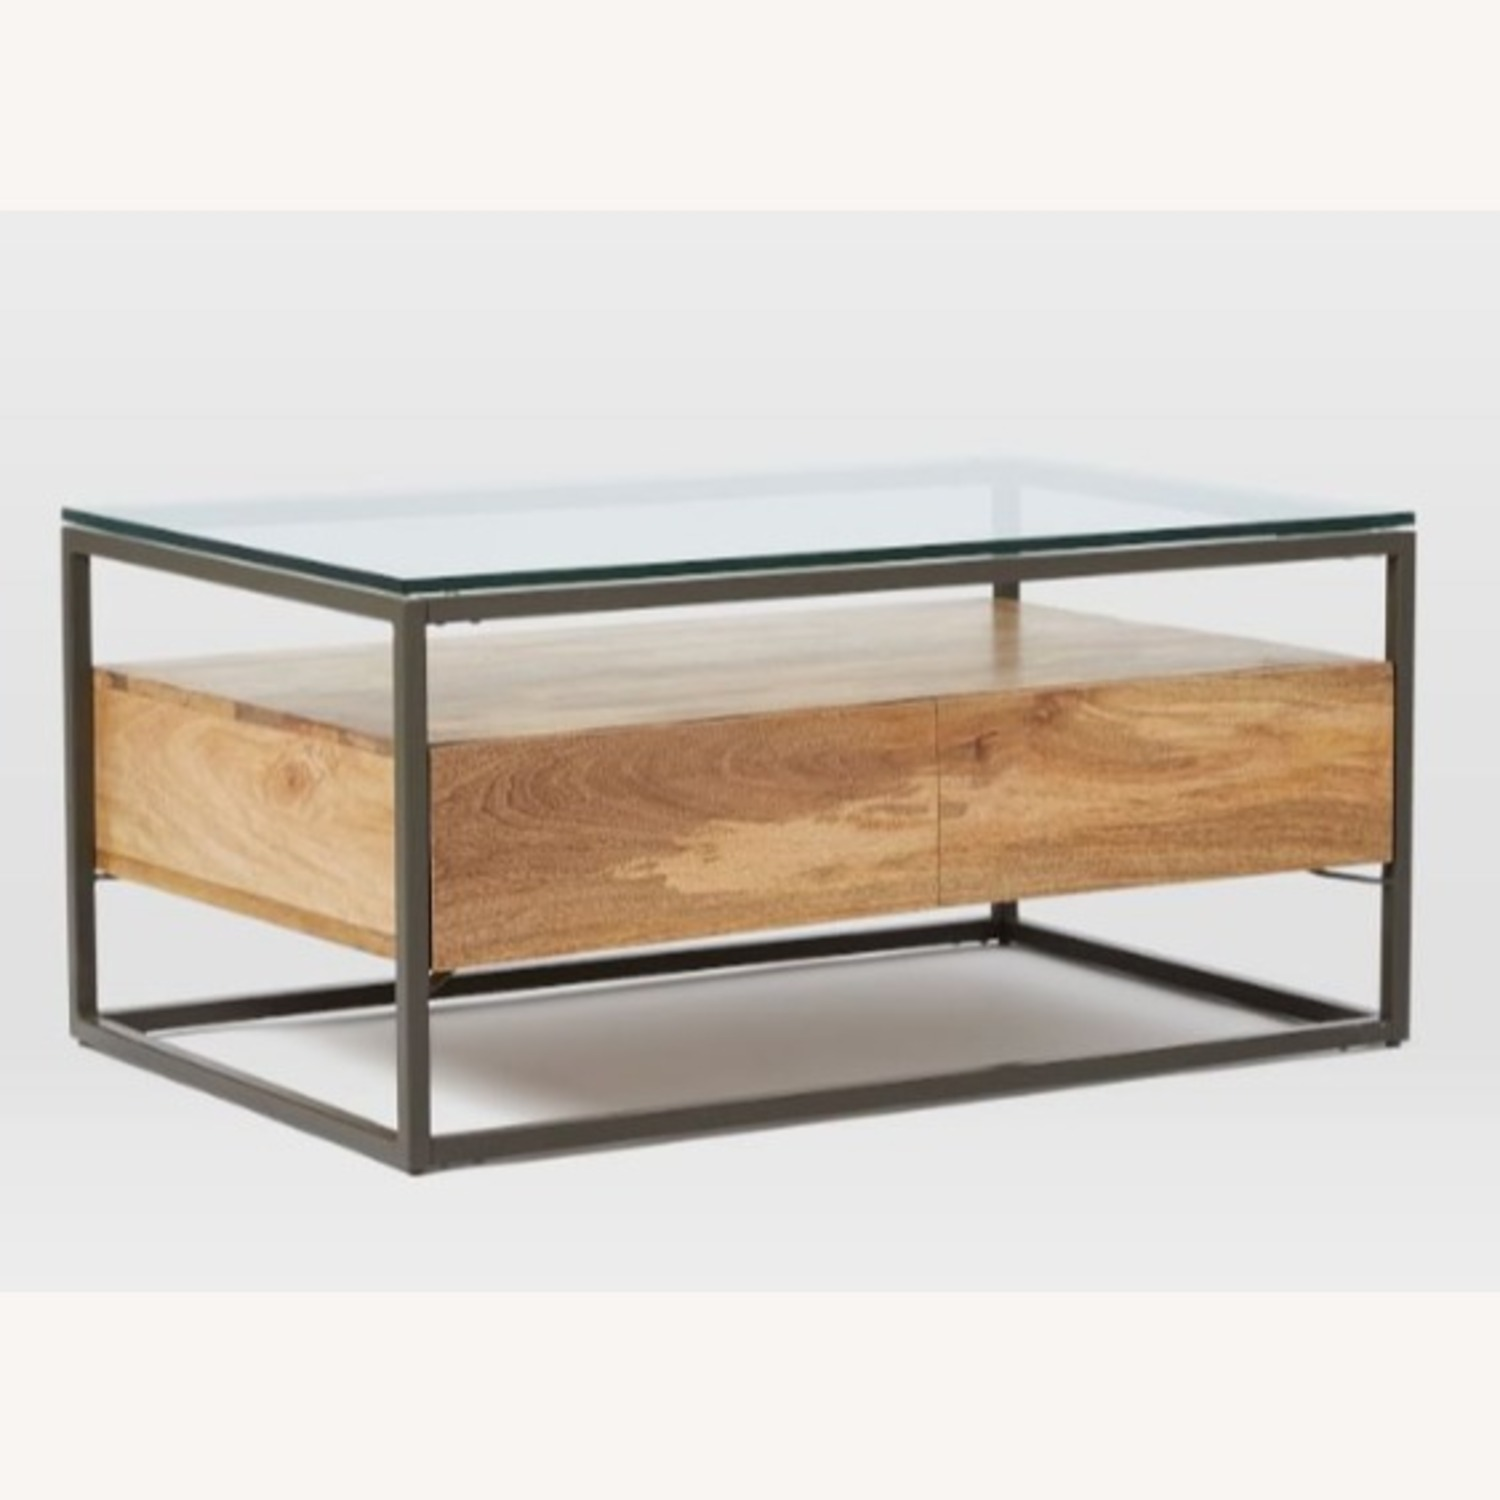 West Elm Box Frame Storage Coffee Table, Raw Mango, Large - image-1